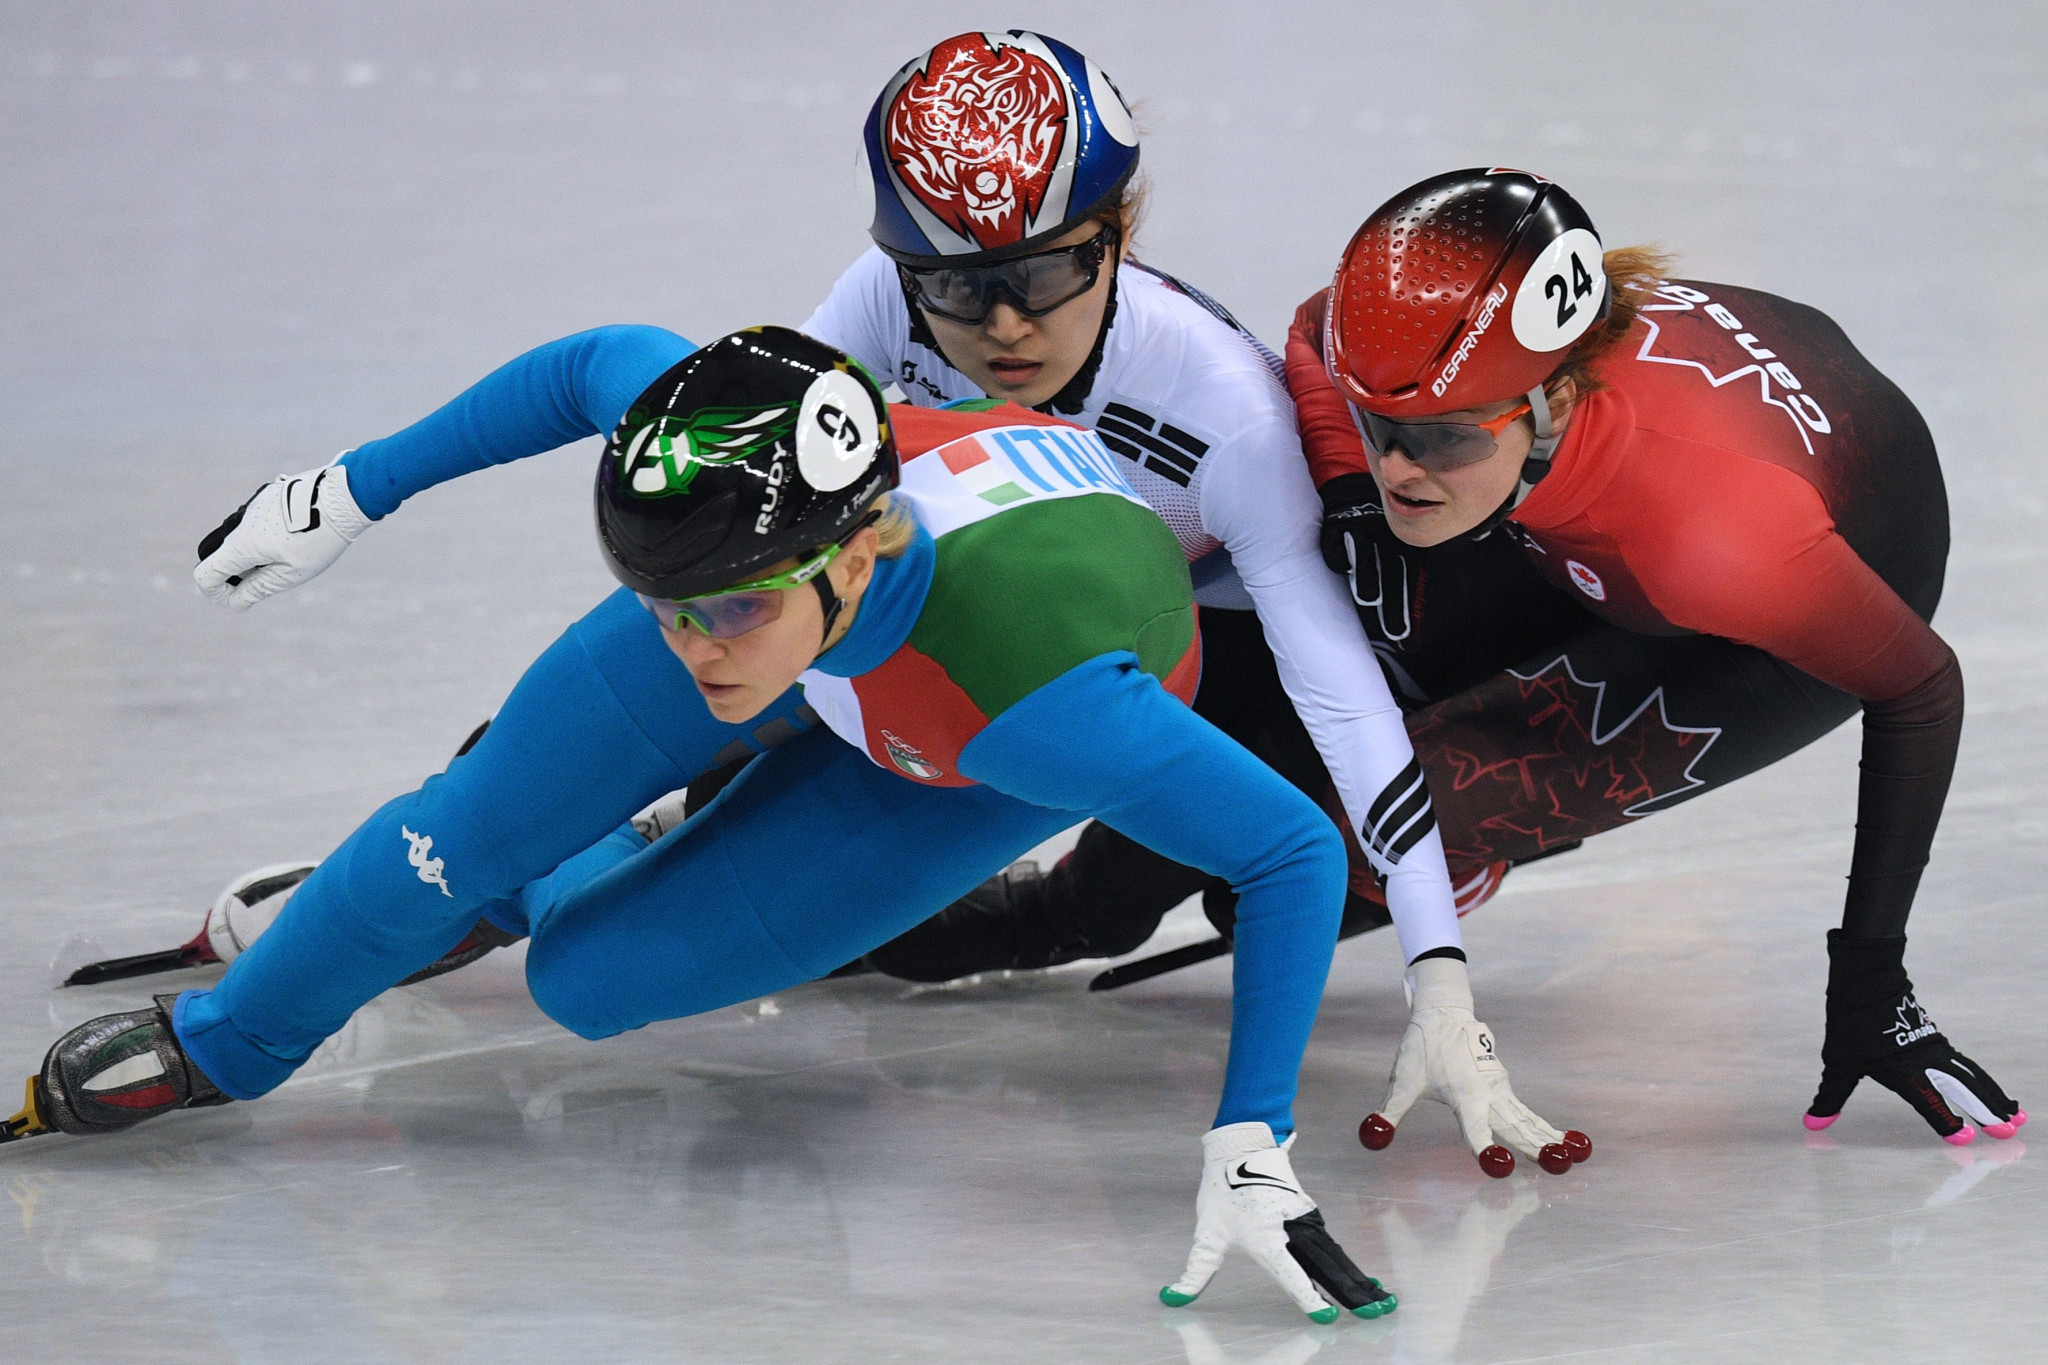 Kim Boutin, right, was promoted to bronze after the disqualification of South Korea's Choi Minjeong, centre ©Getty Images